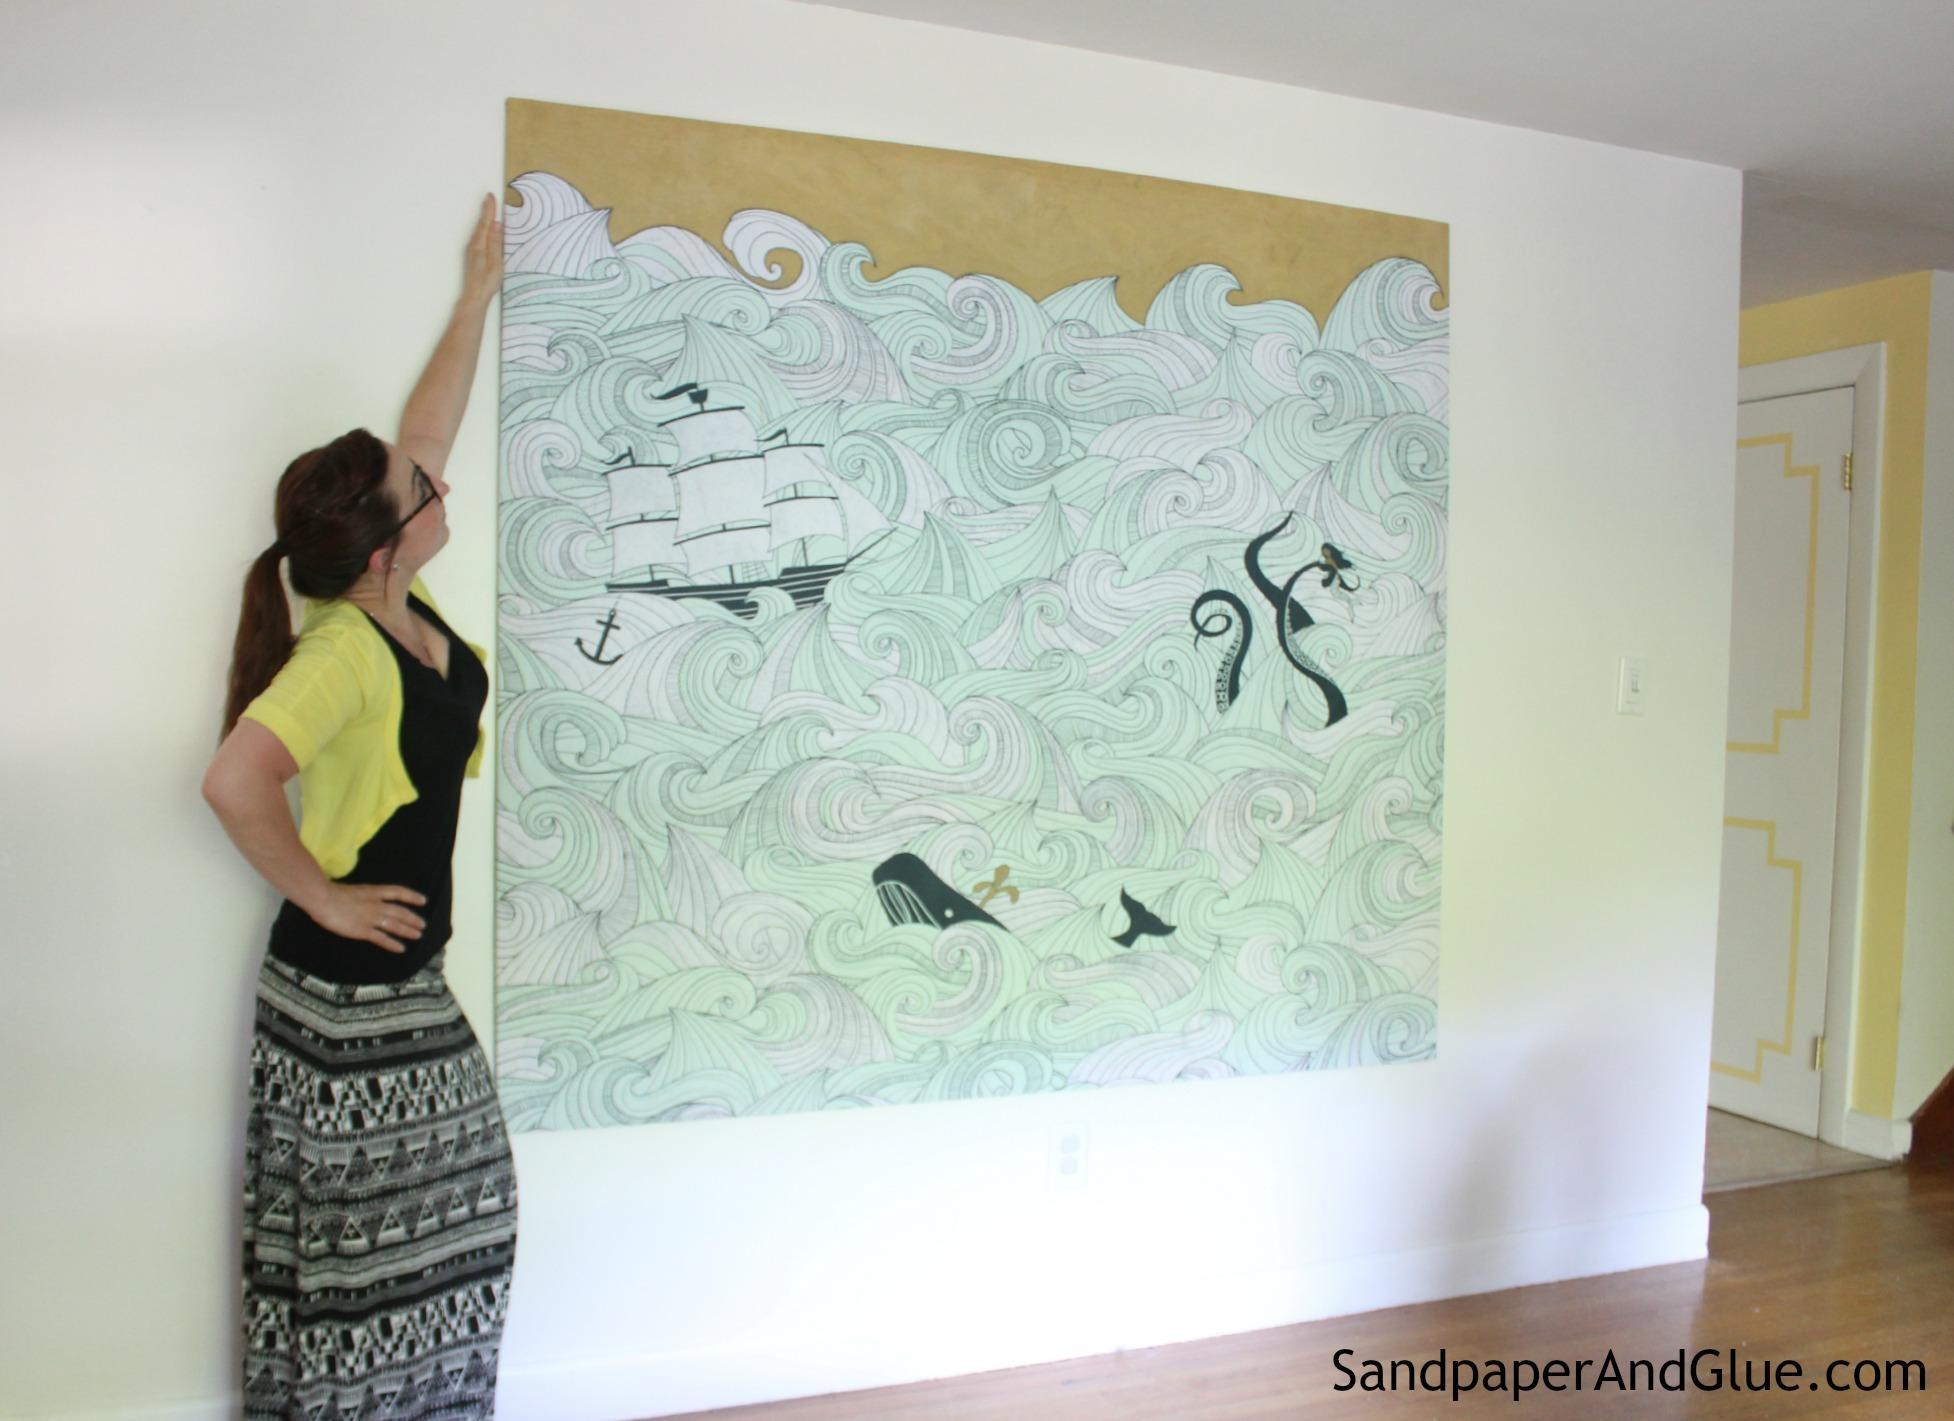 Diy Stretched Fabric Canvas (With A Shower Curtain!) | Stephanie With Regard To Stretched Fabric Wall Art (Image 9 of 20)